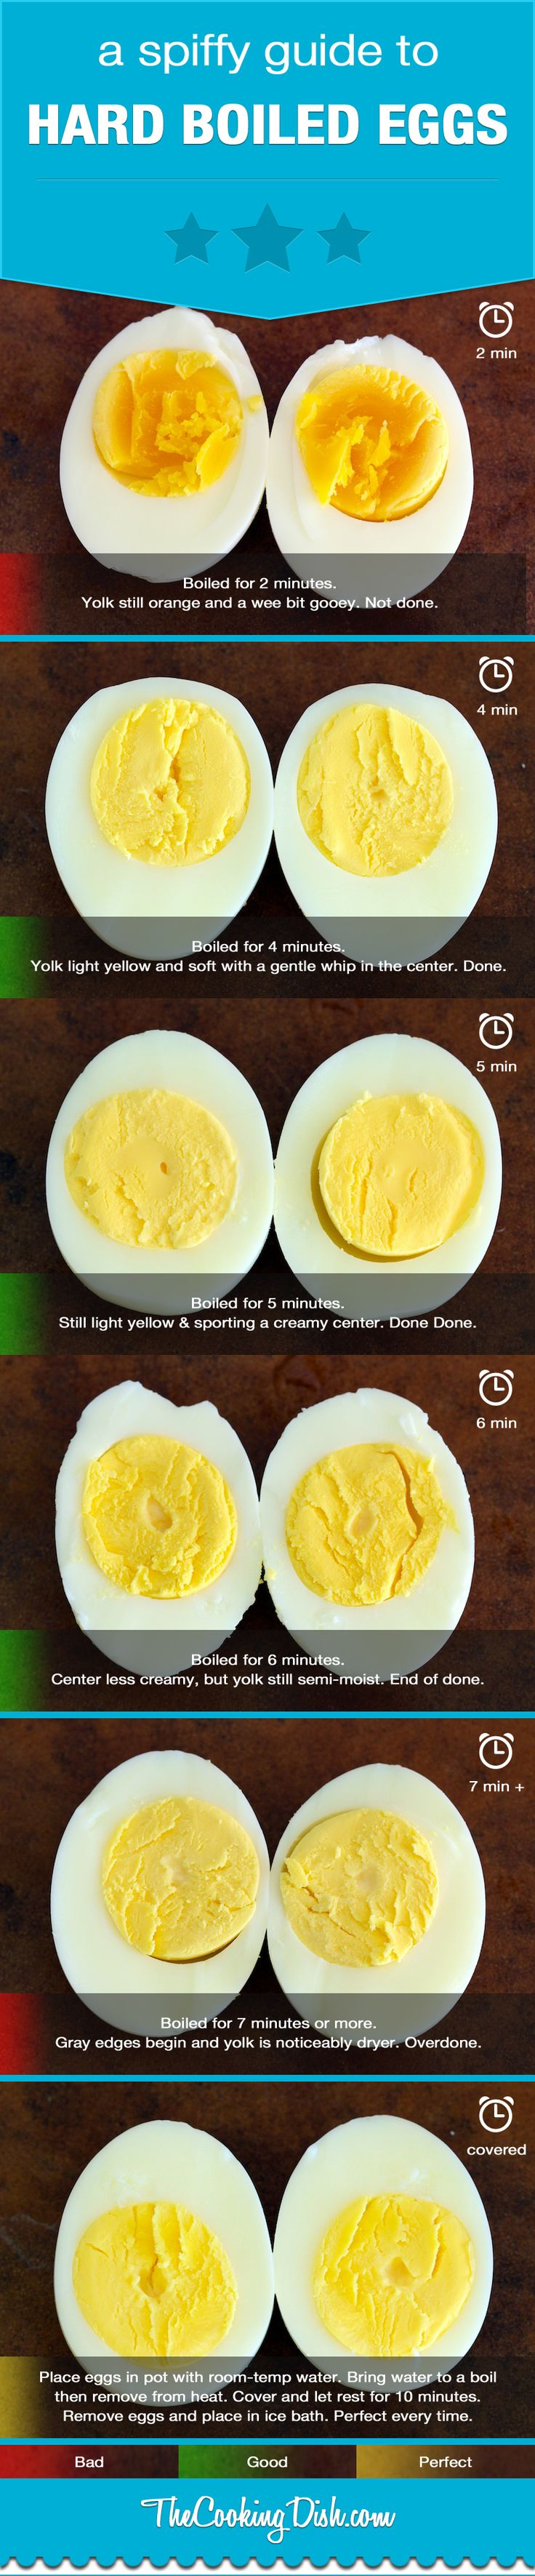 How to make perfectly boiled eggs.